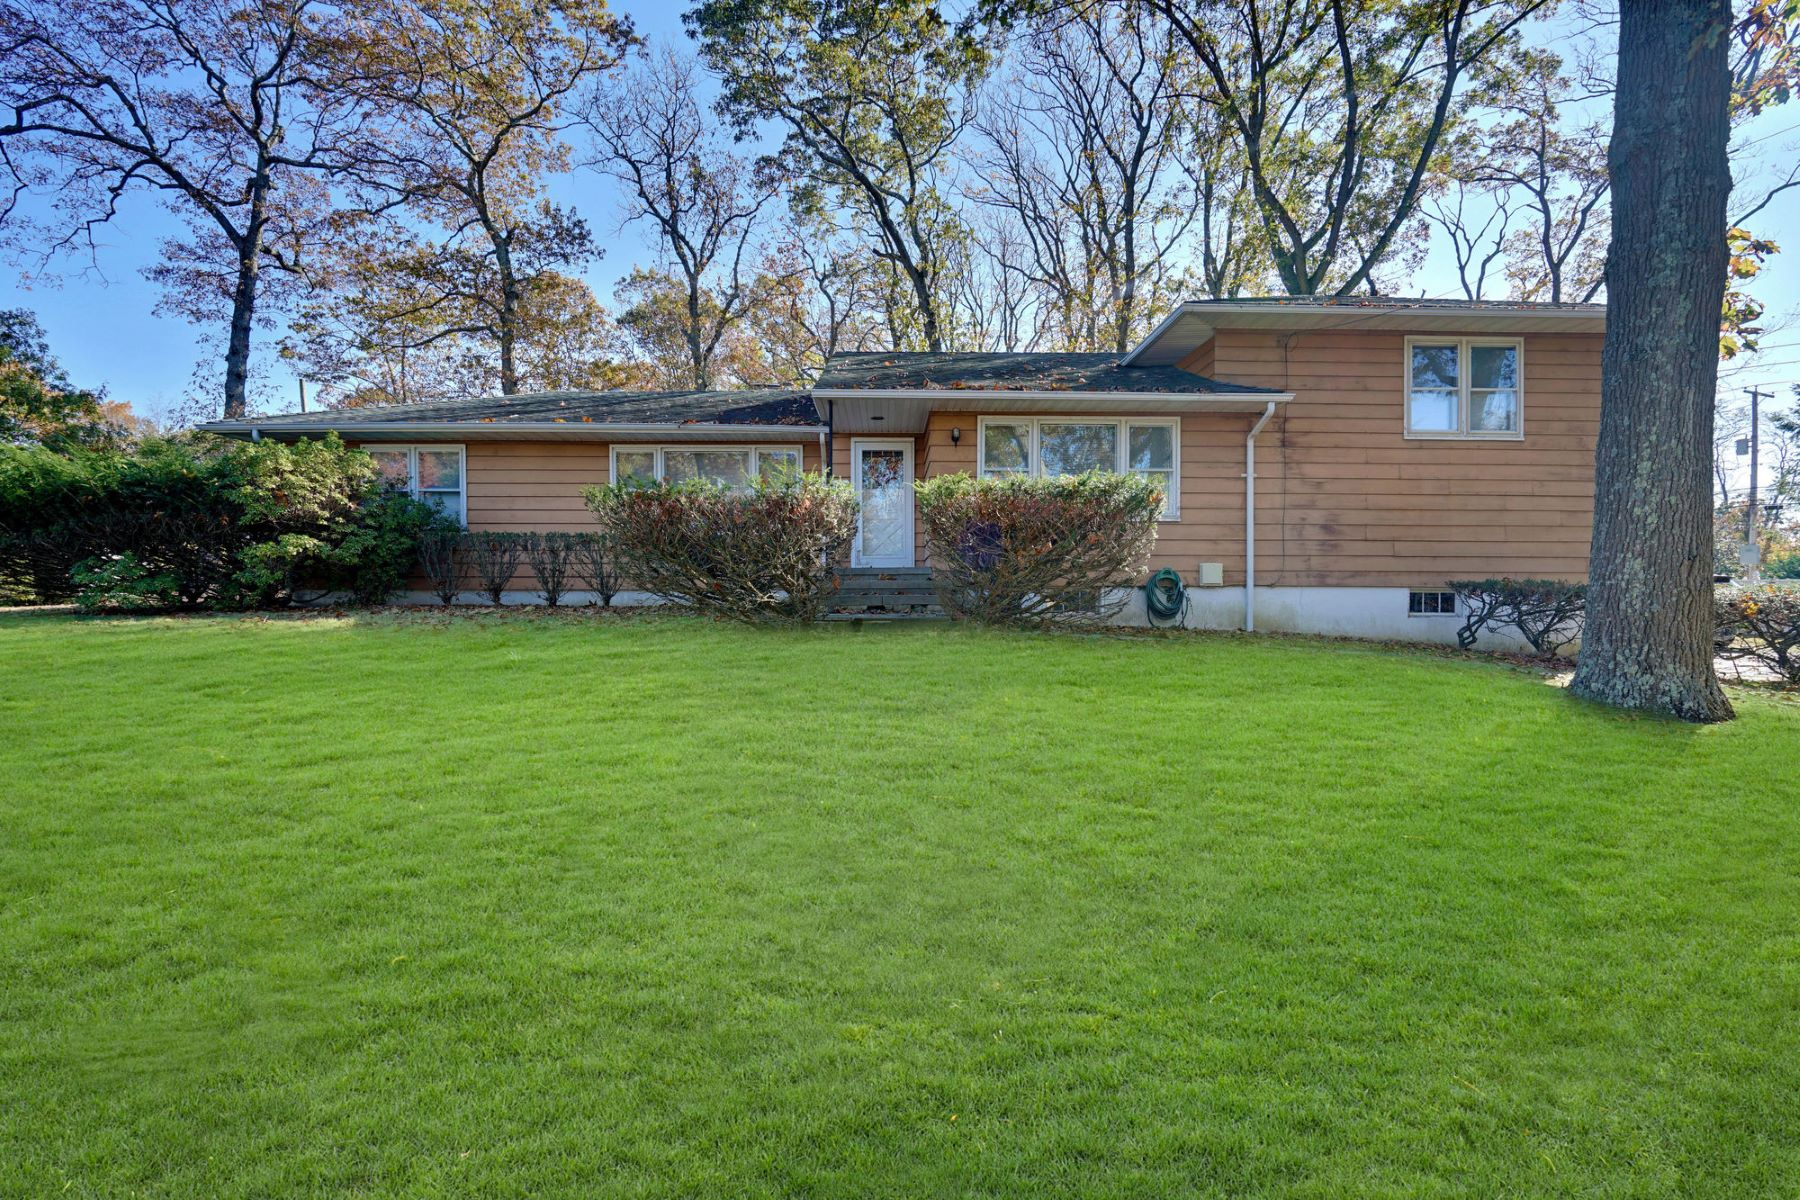 Single Family Homes for Sale at Perched High on the Knoll of a Wooded Lot 1862 Cambridge Drive Wall, New Jersey 07719 United States